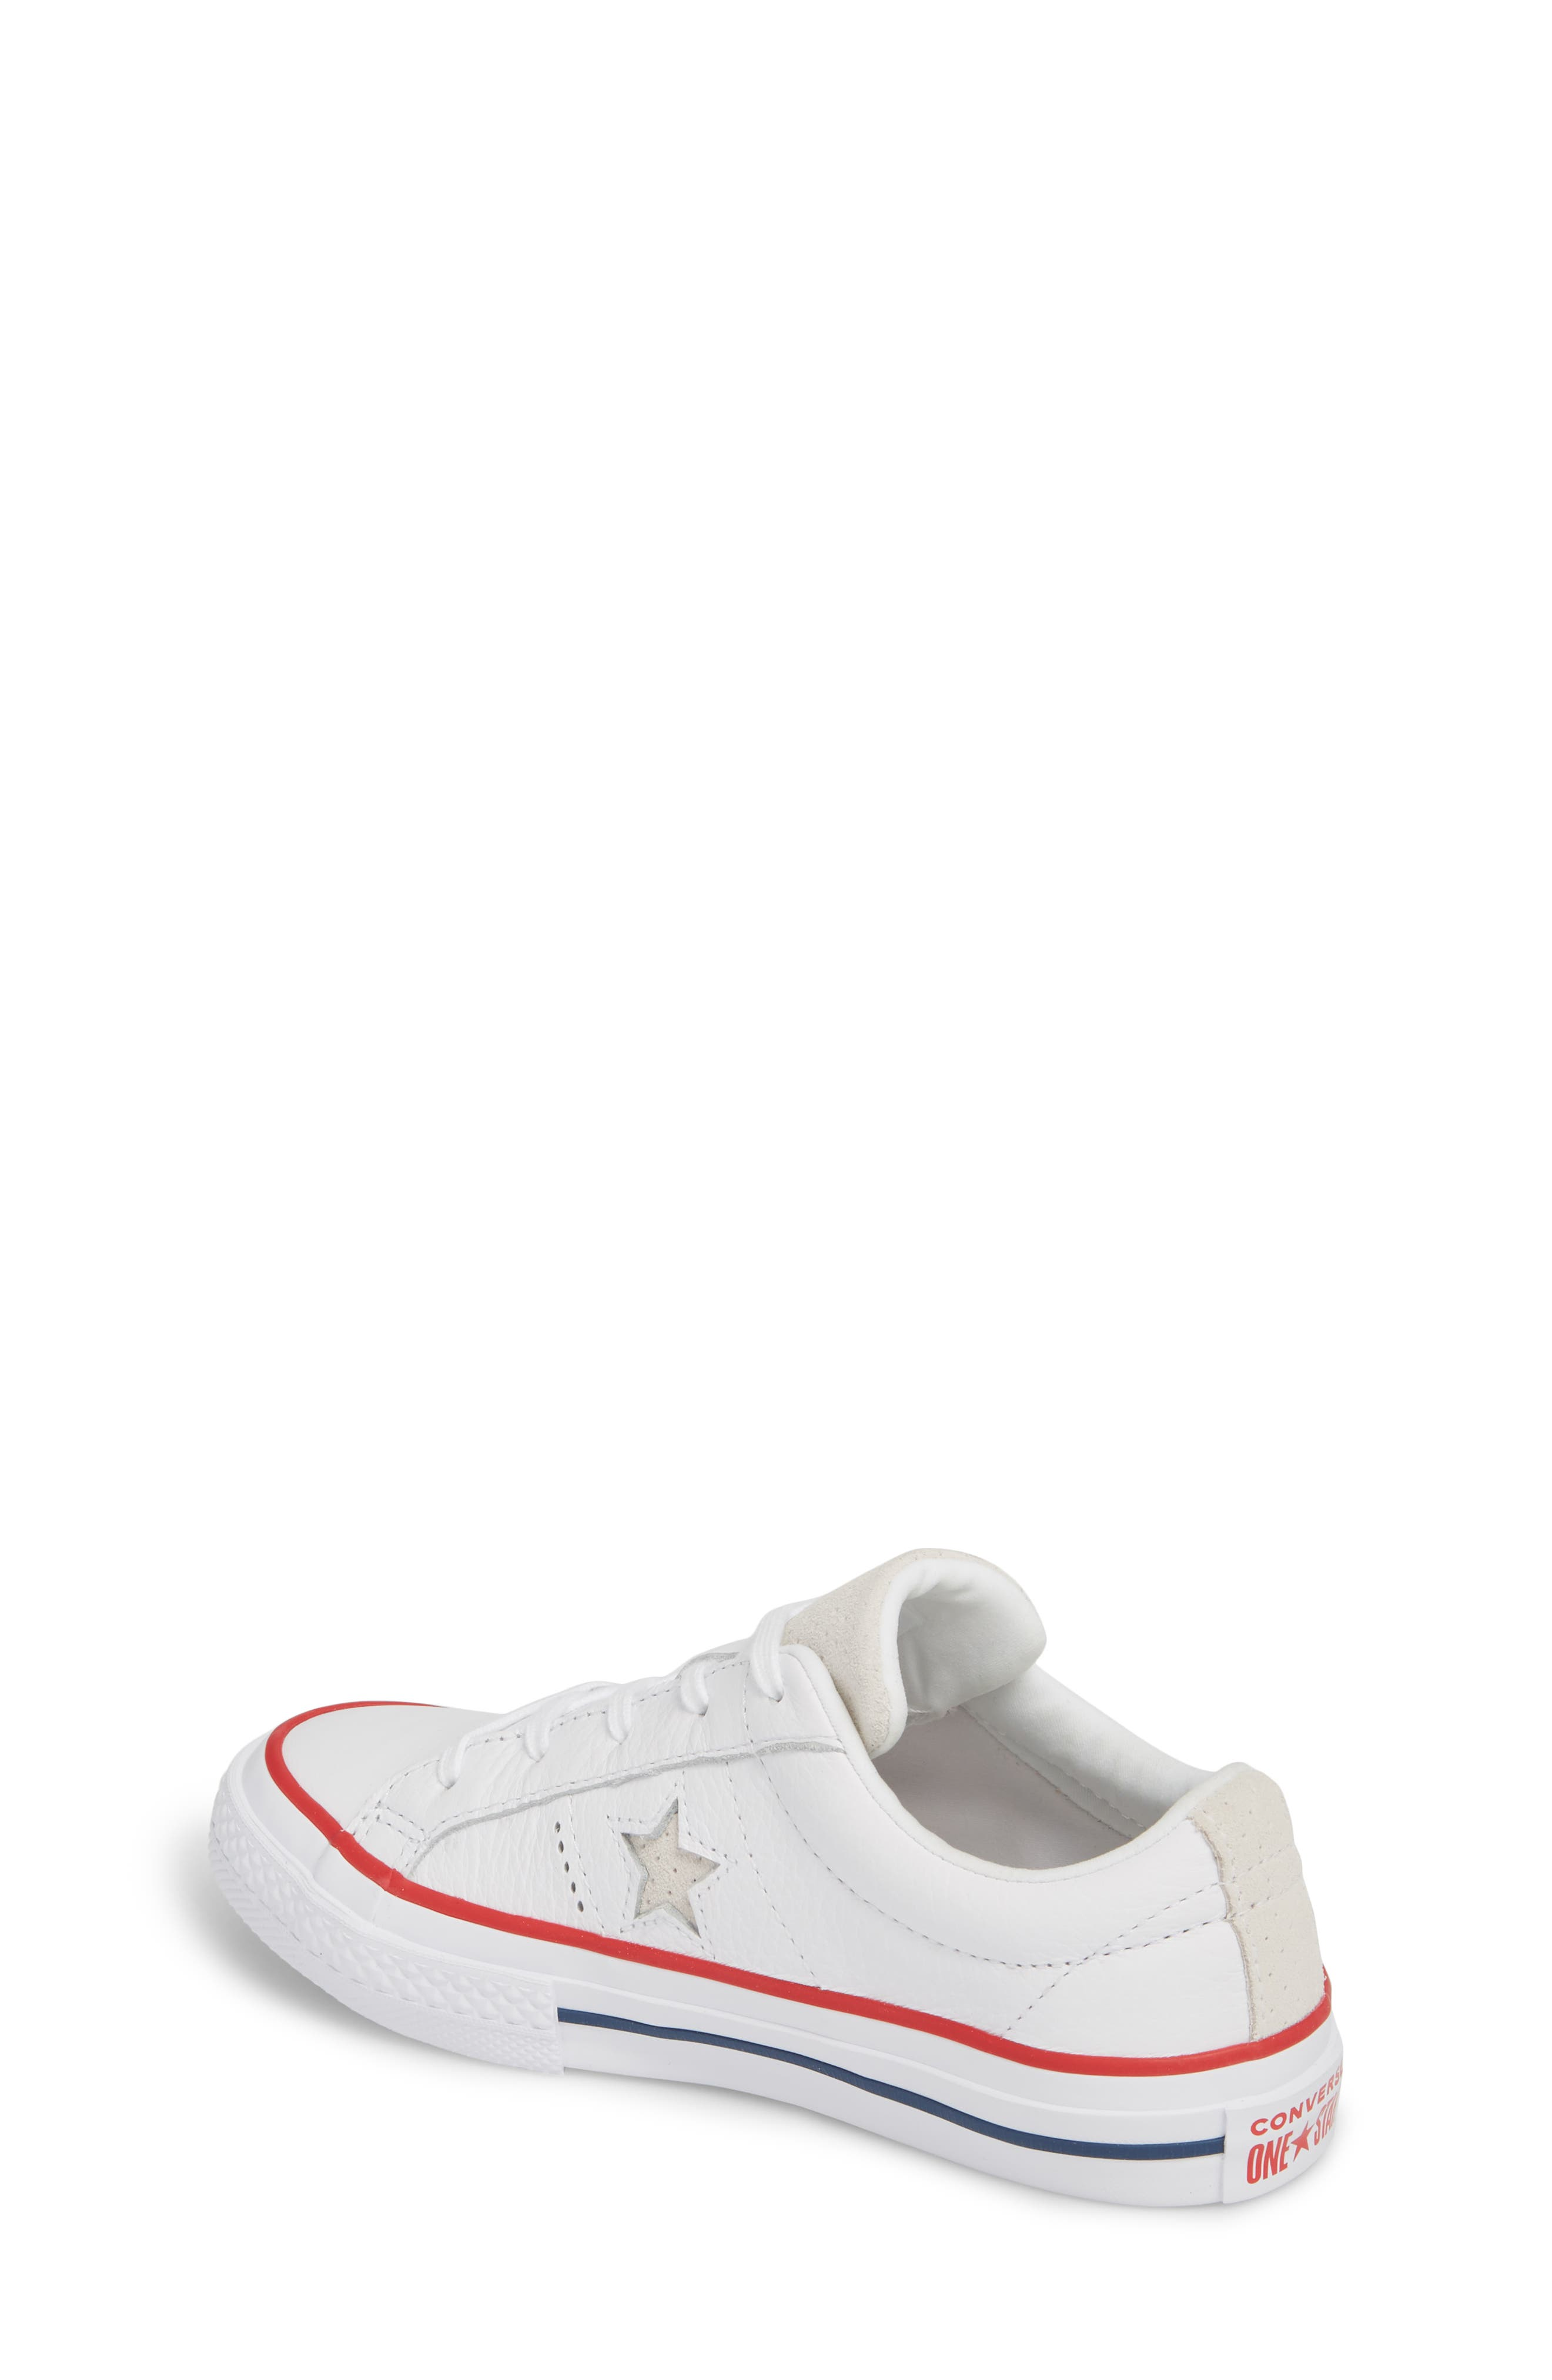 Chuck Taylor<sup>®</sup> All Star<sup>®</sup> New Heritage Oxford Sneaker,                             Alternate thumbnail 2, color,                             White